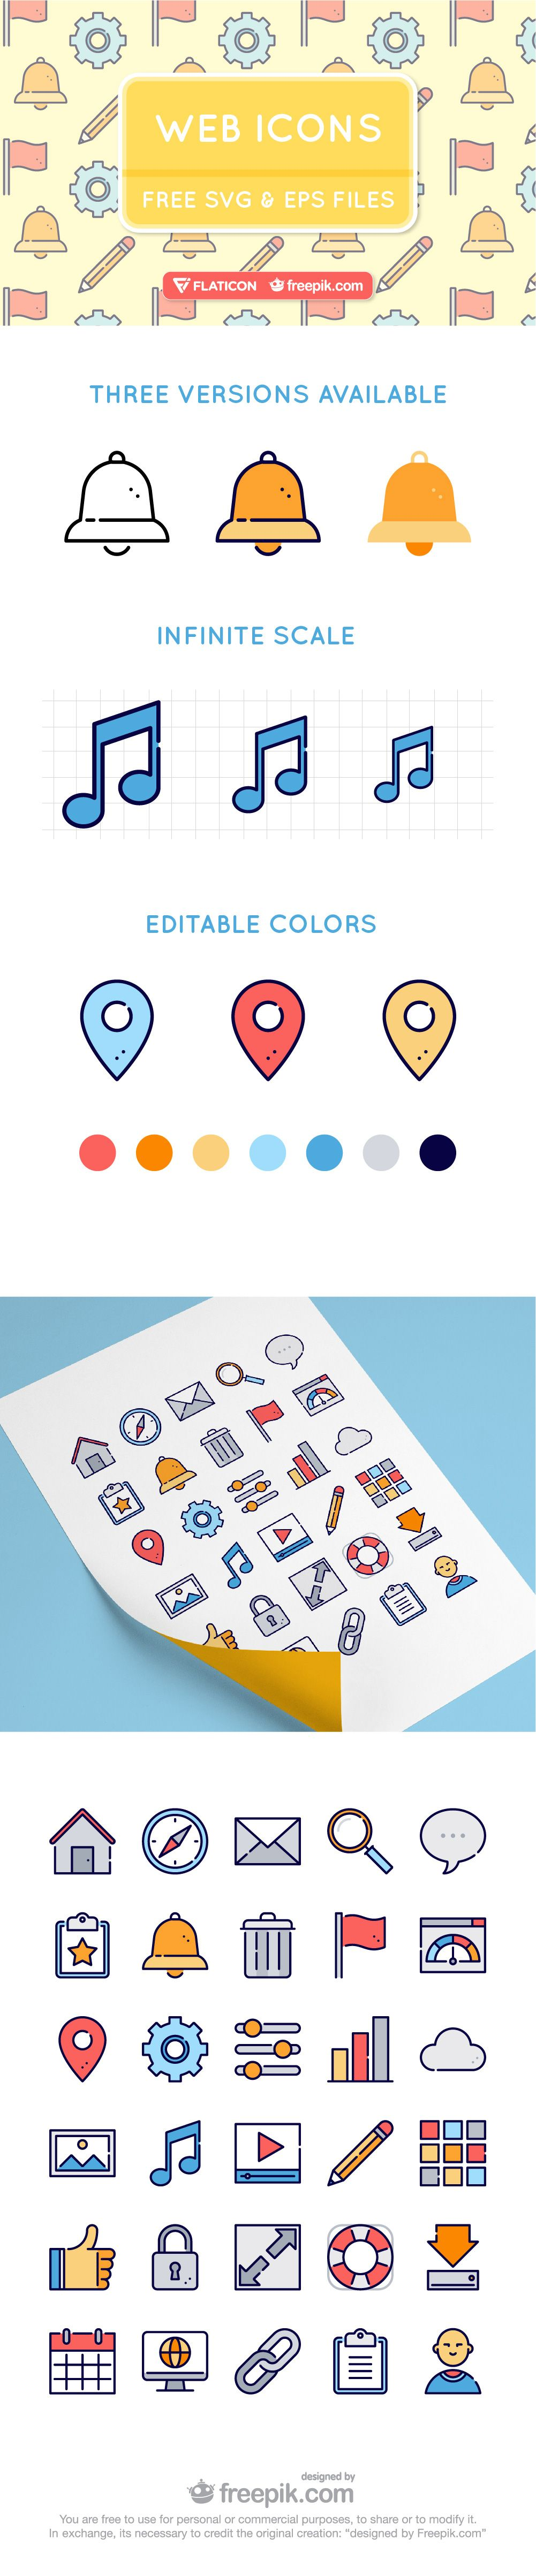 Free Download Web Icons Vector Webdesign Web Icon Vector Web Icons Web Design